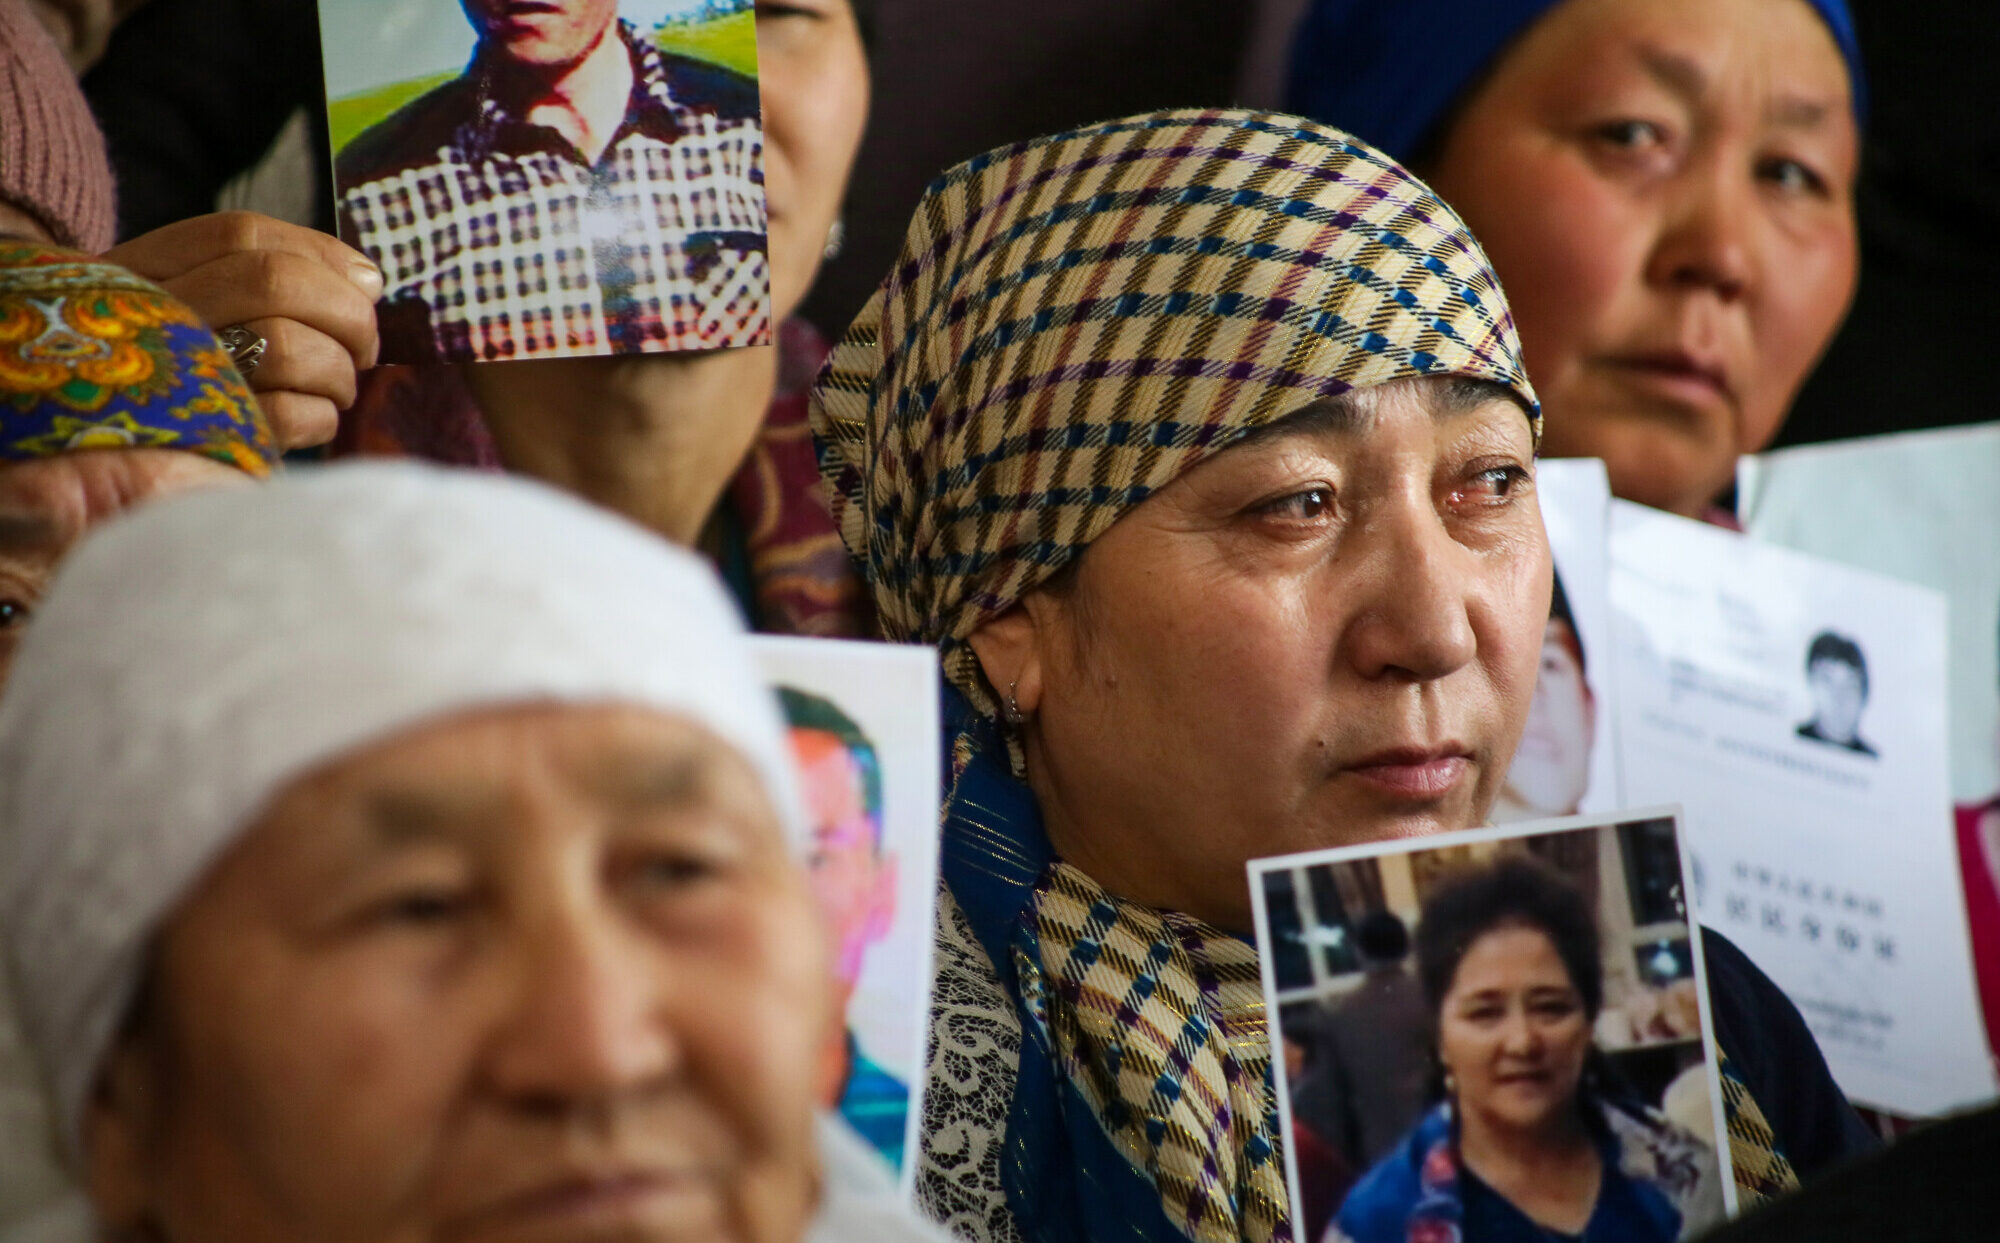 Belgium, Czech Republic Recognize China's Treatment of Uyghurs as Genocide